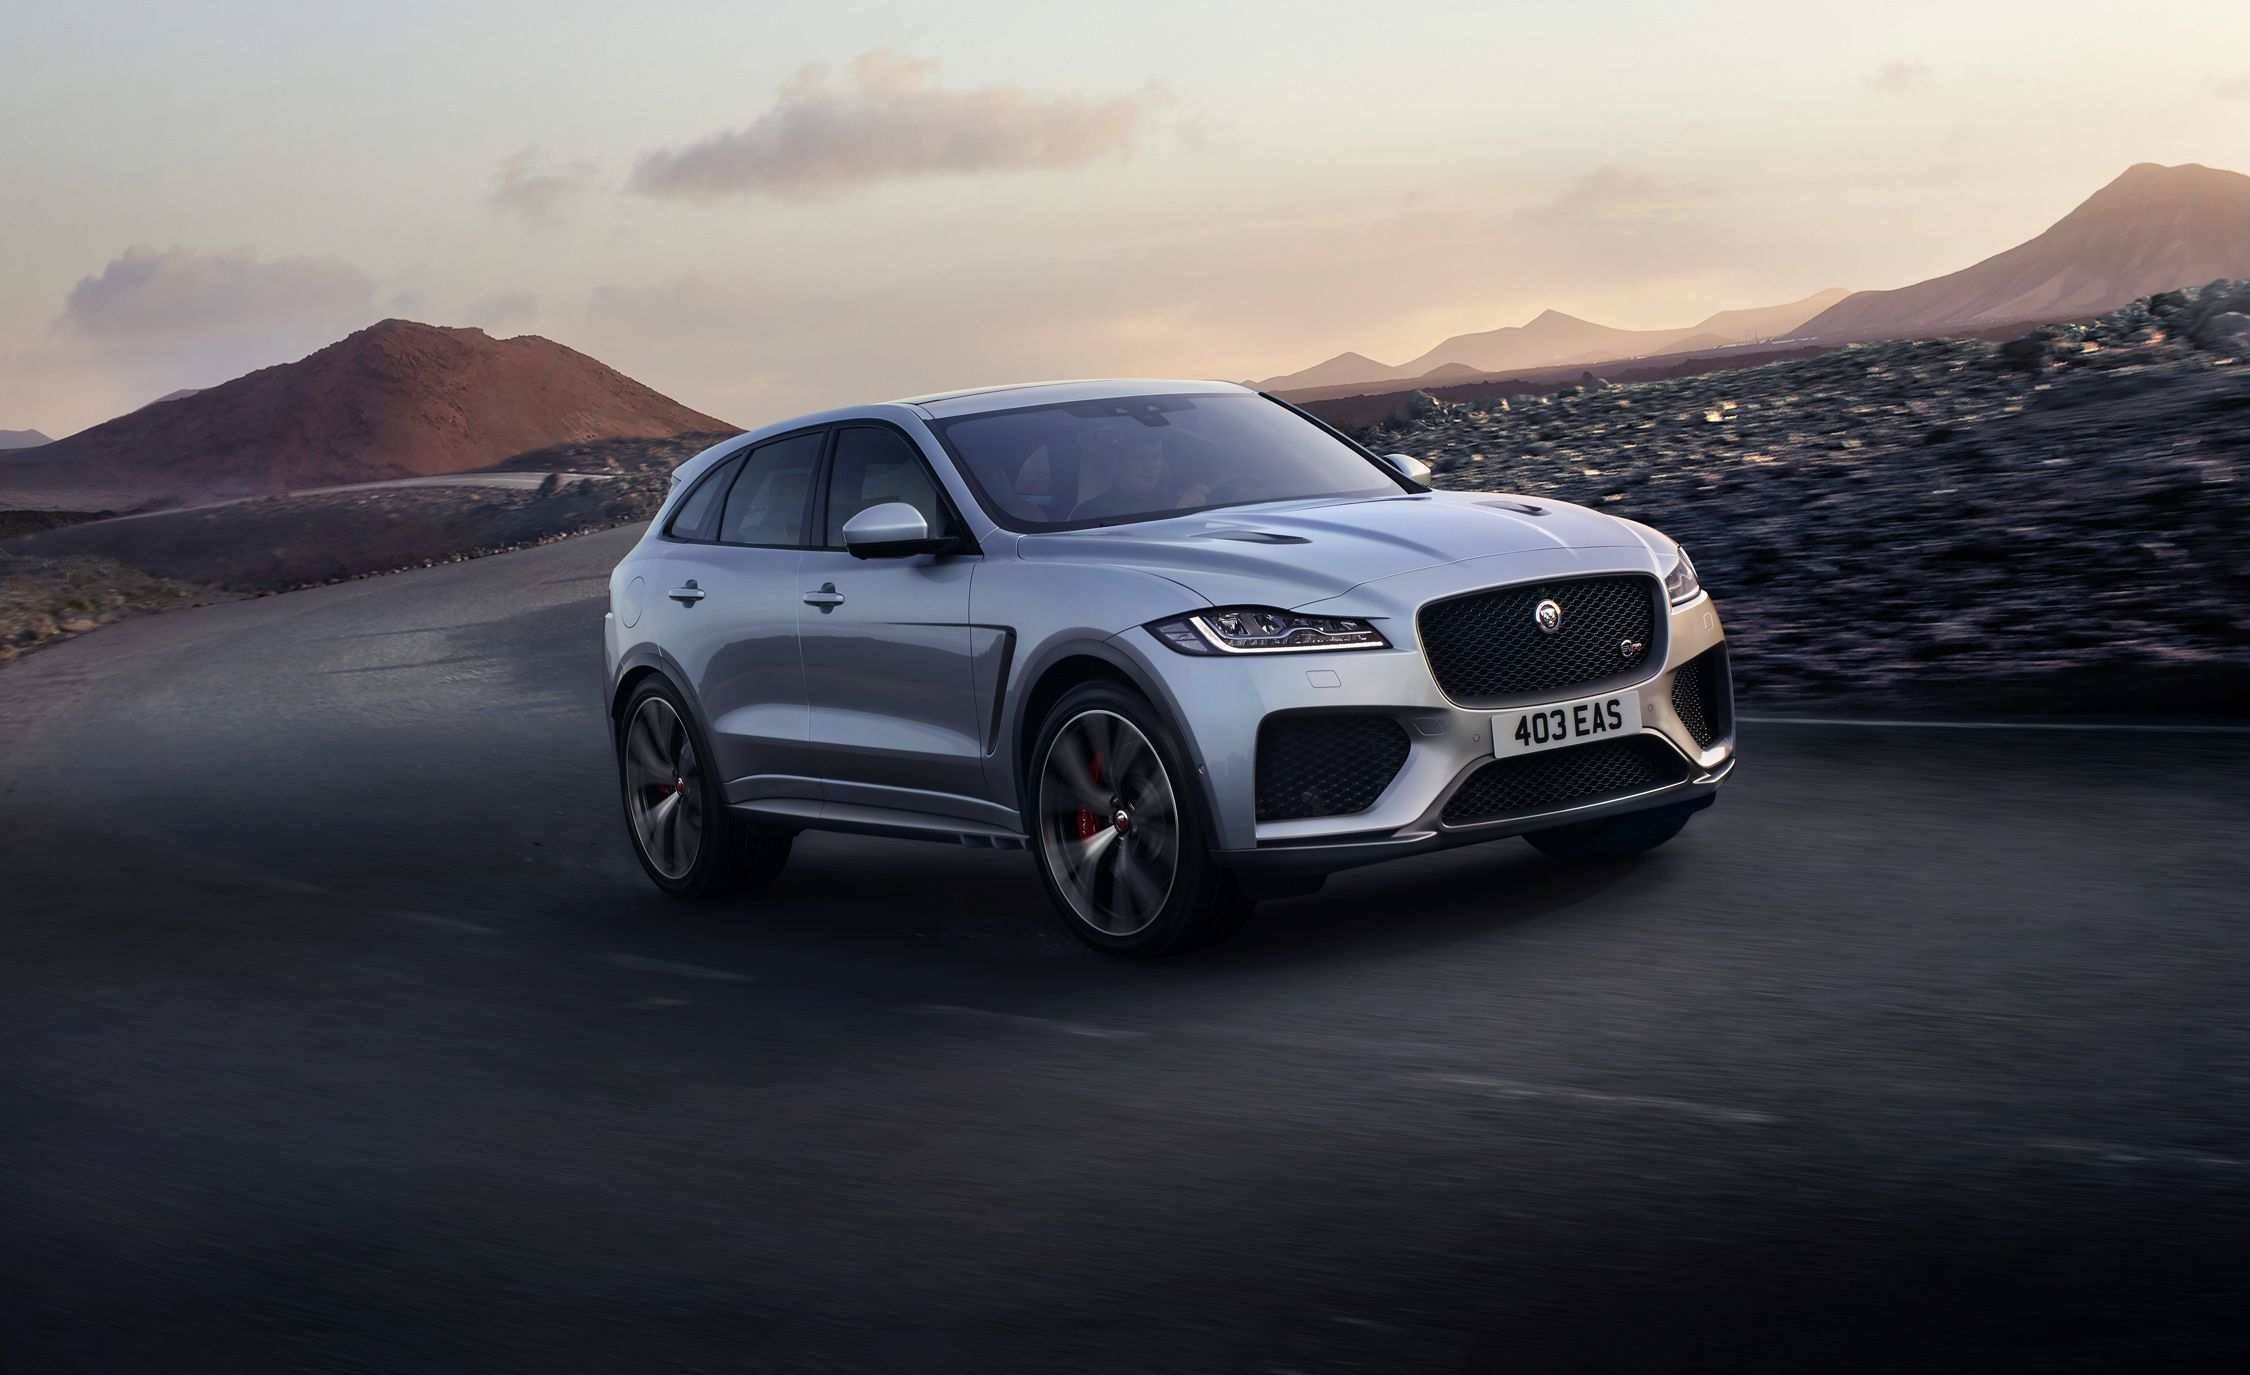 56 Best Review 2019 Jaguar Svr Photos for 2019 Jaguar Svr